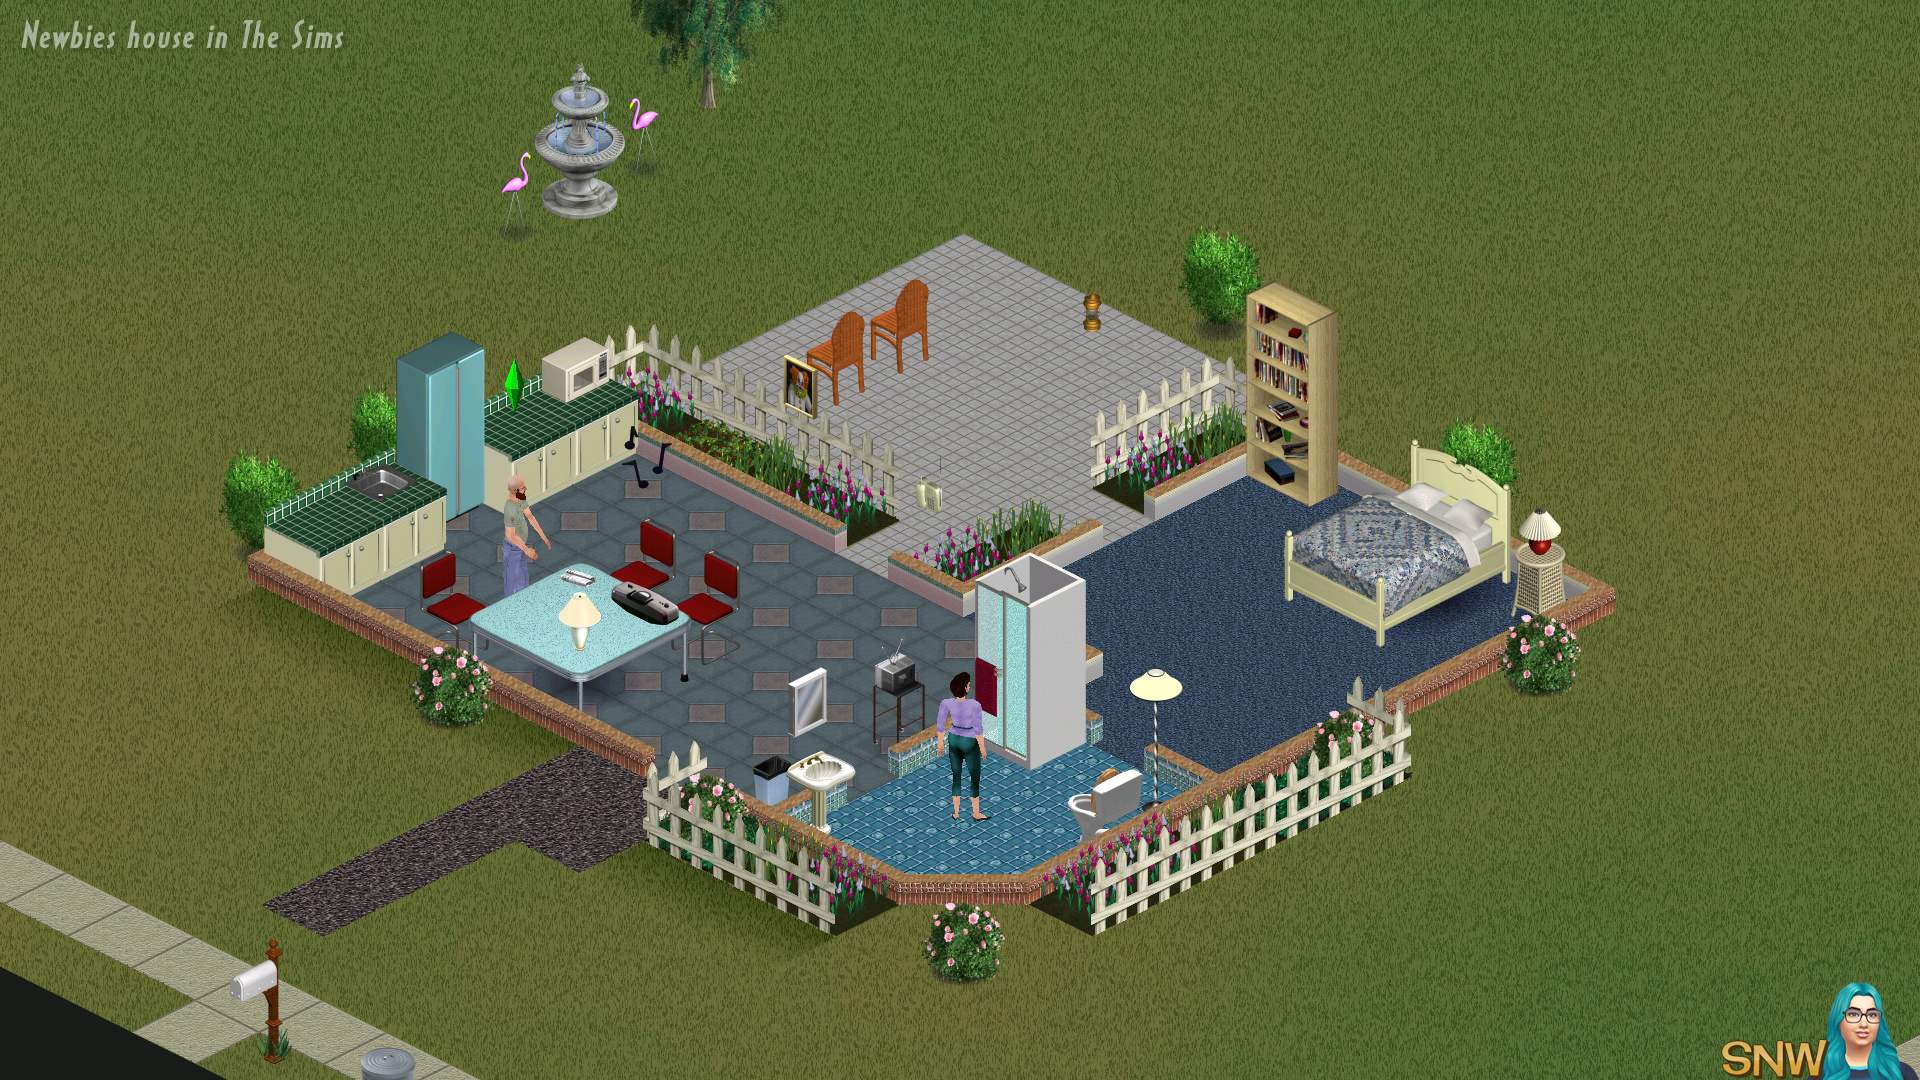 Newbies House  SNW  SimsNetworkcom